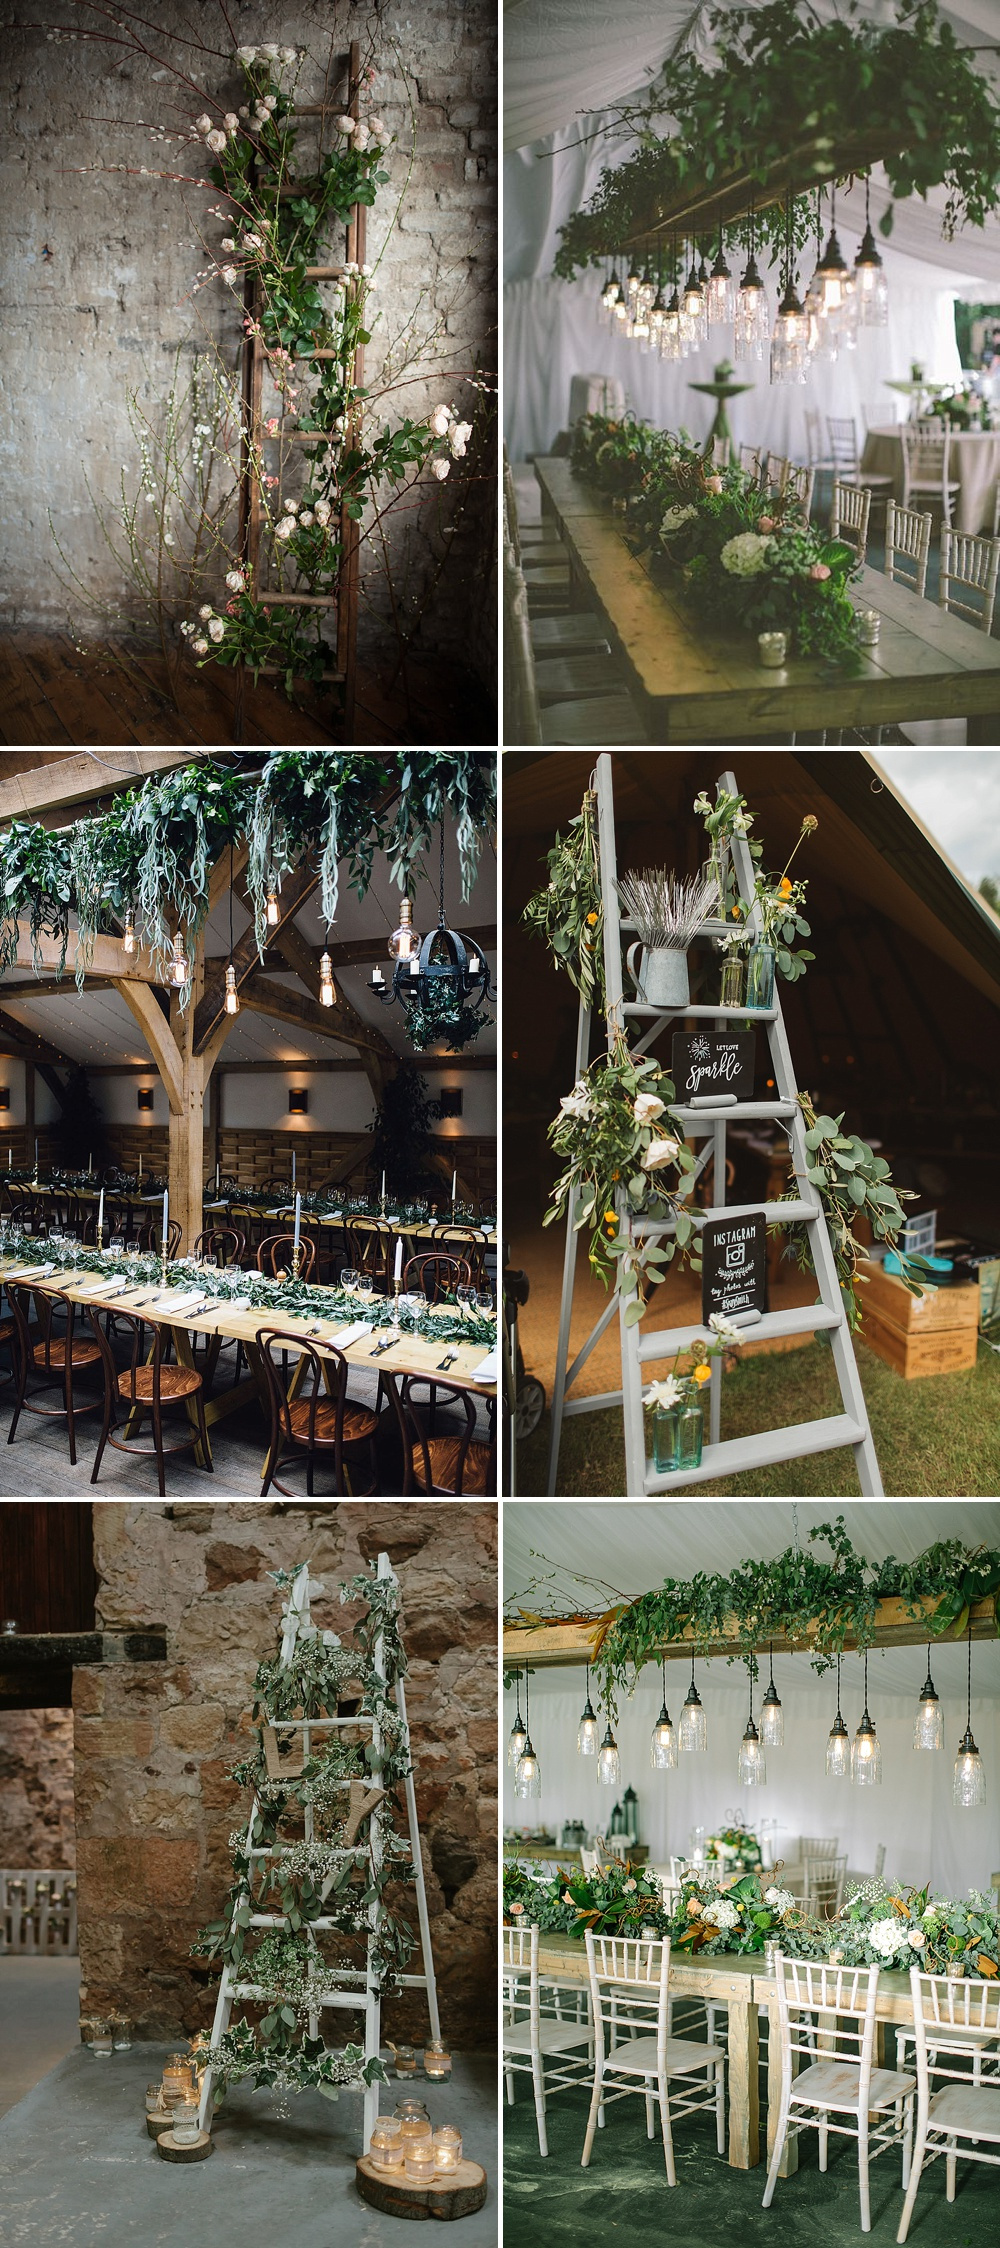 Wedding Decor & Styling Ladders Using Greenery & Foliage